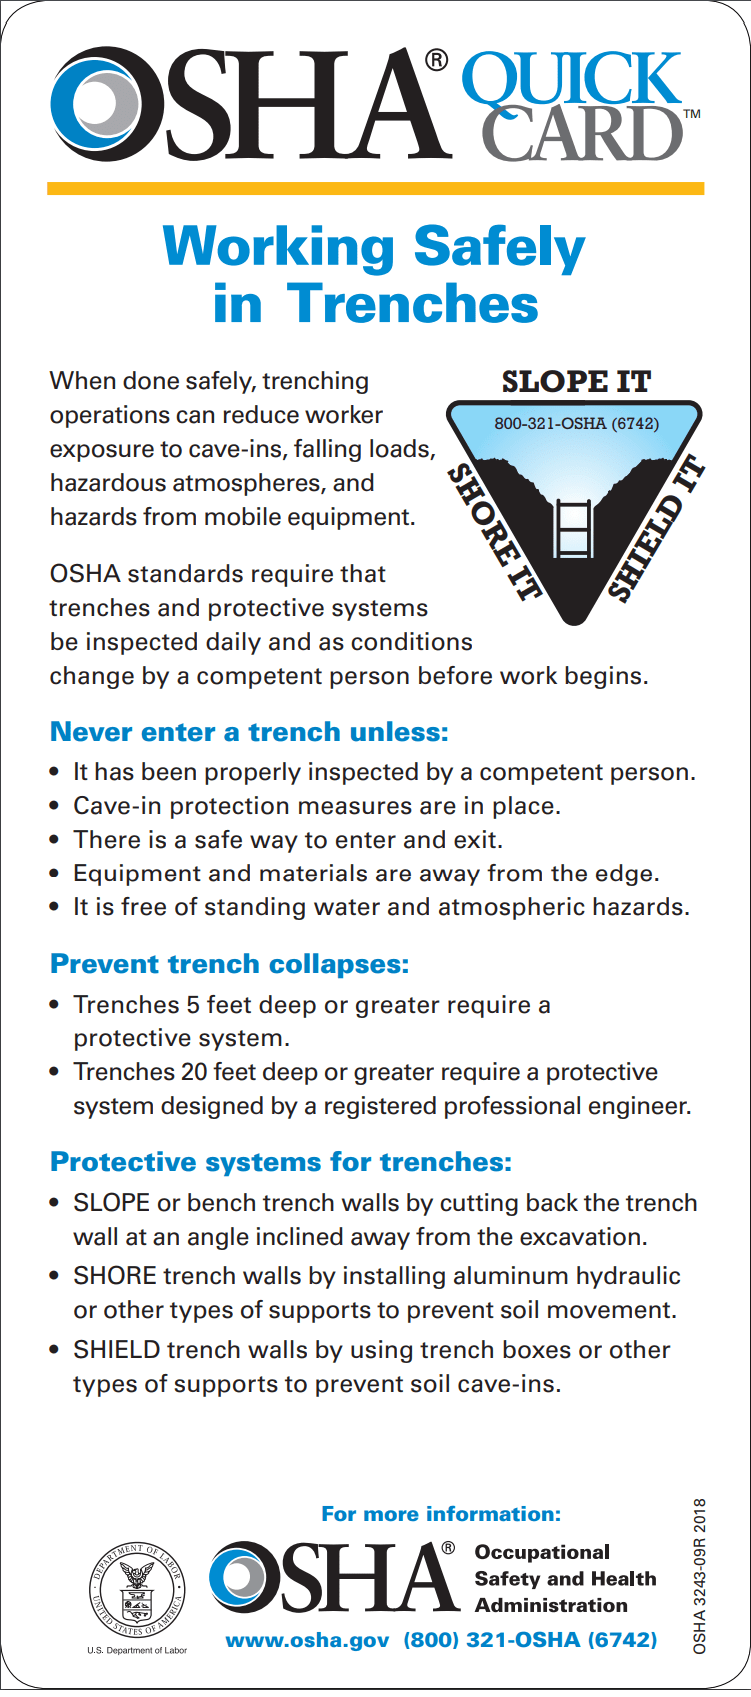 OSHA QUICKCARD™: WORKING SAFELY IN TRENCHES